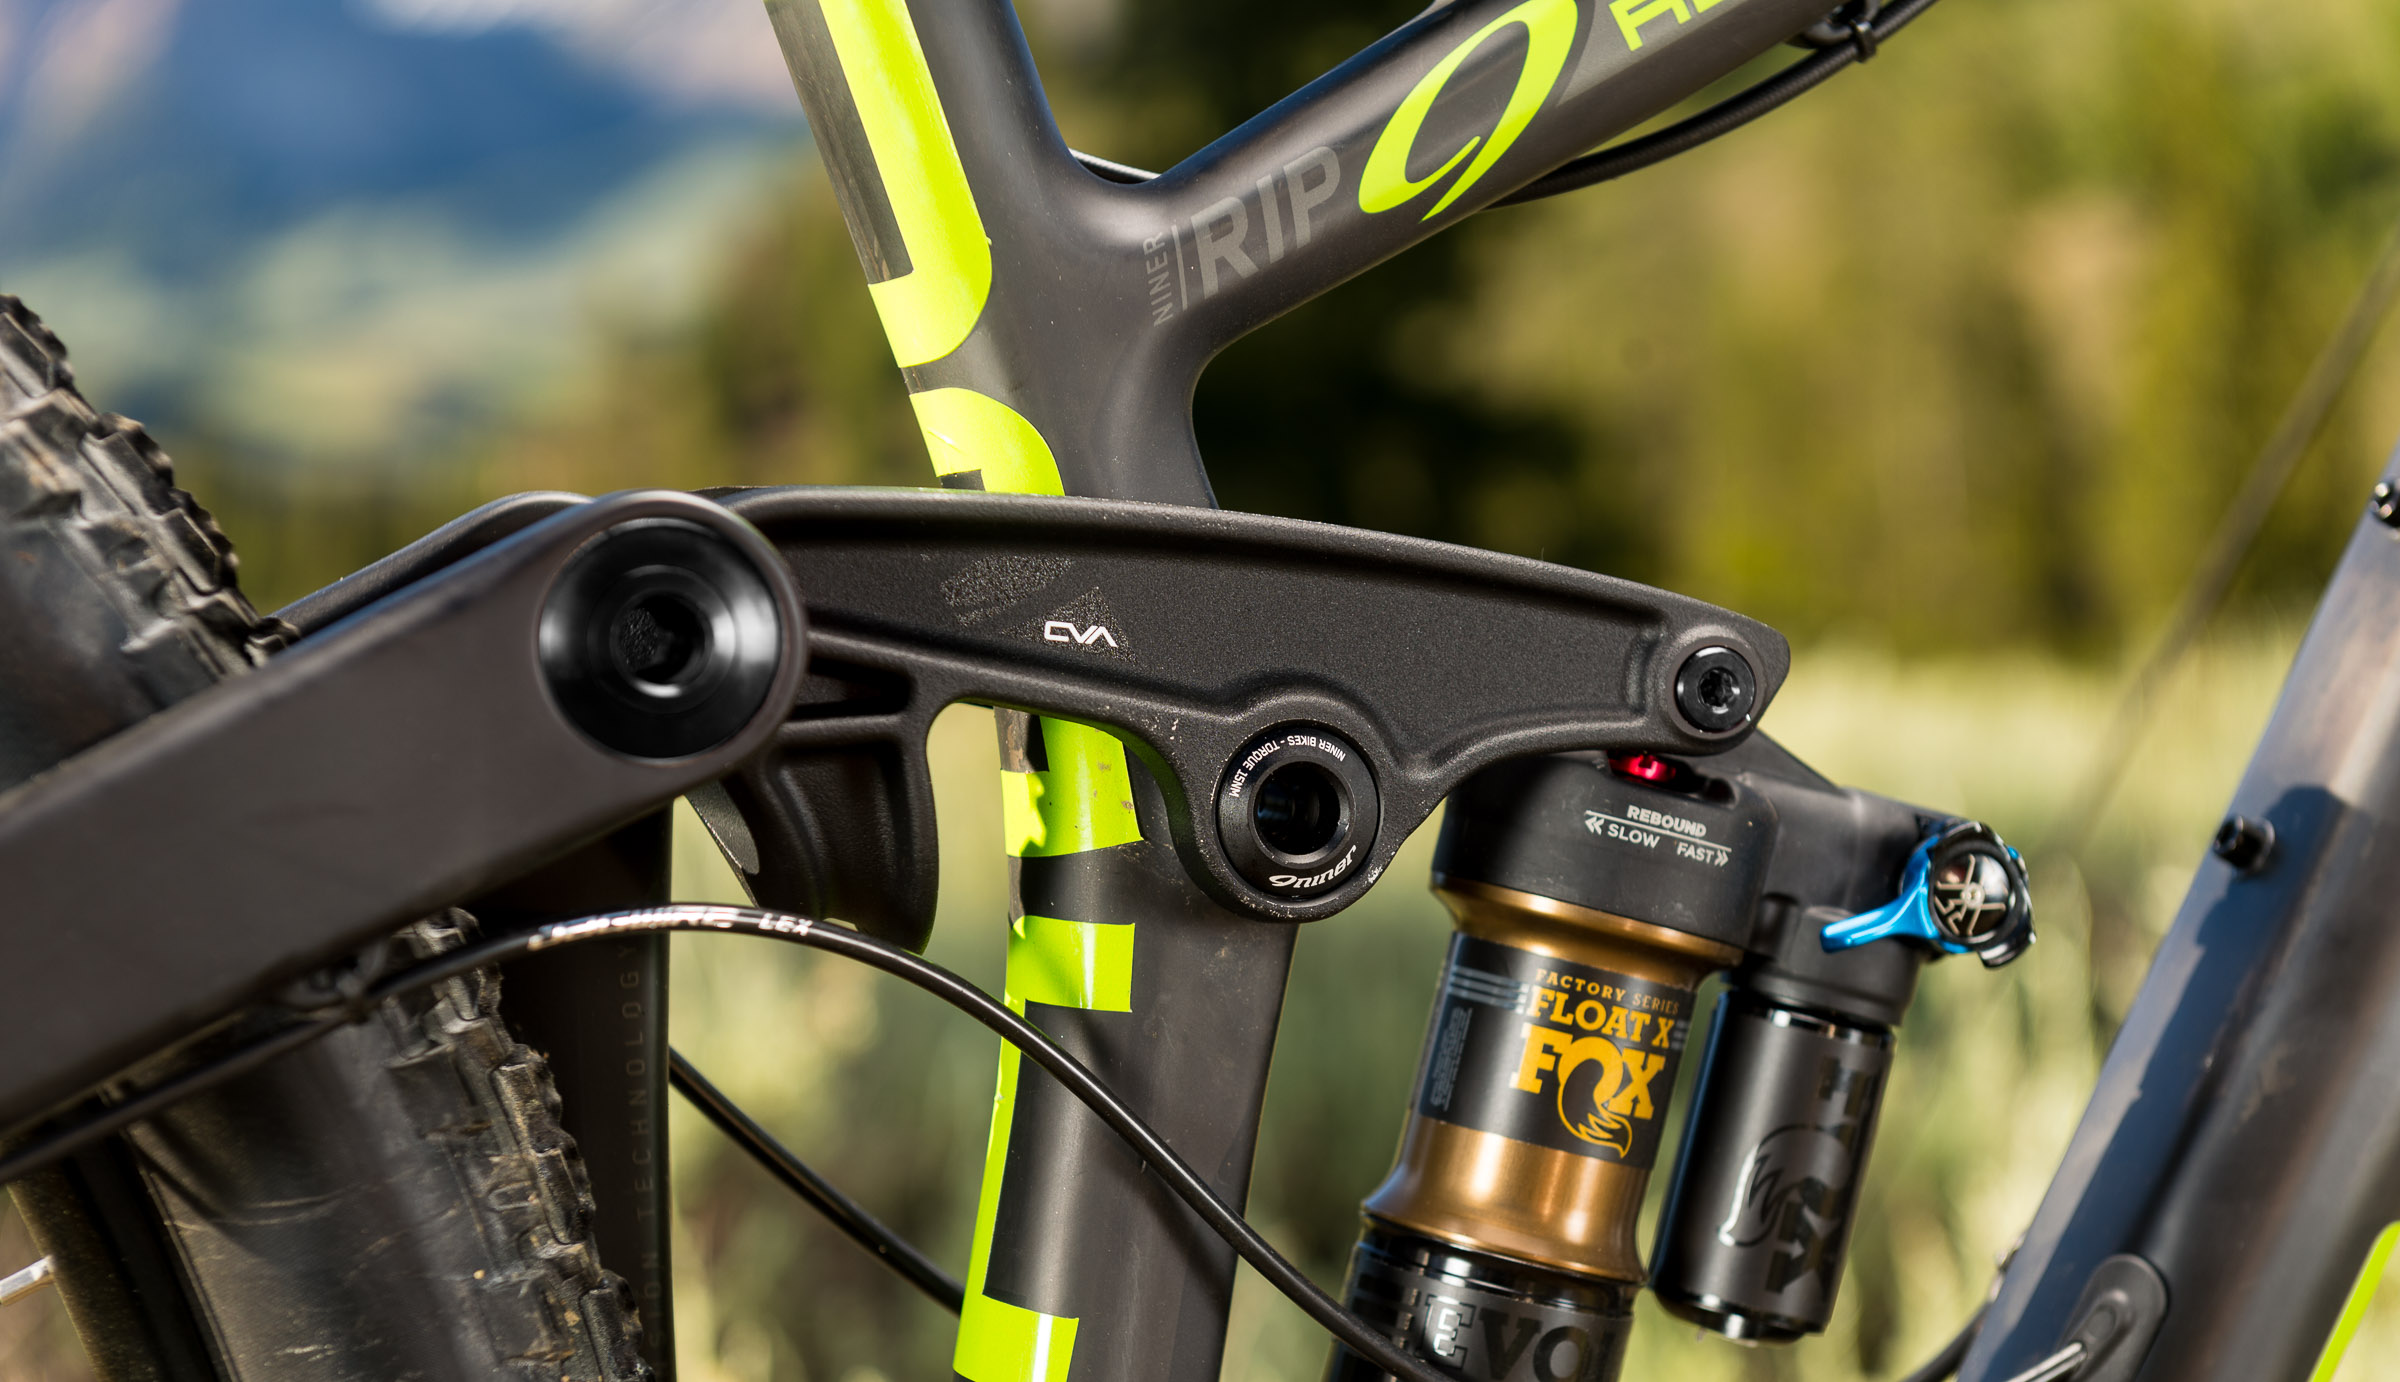 Rear suspension is 150mm driven by a seatpost mounted rocker link.